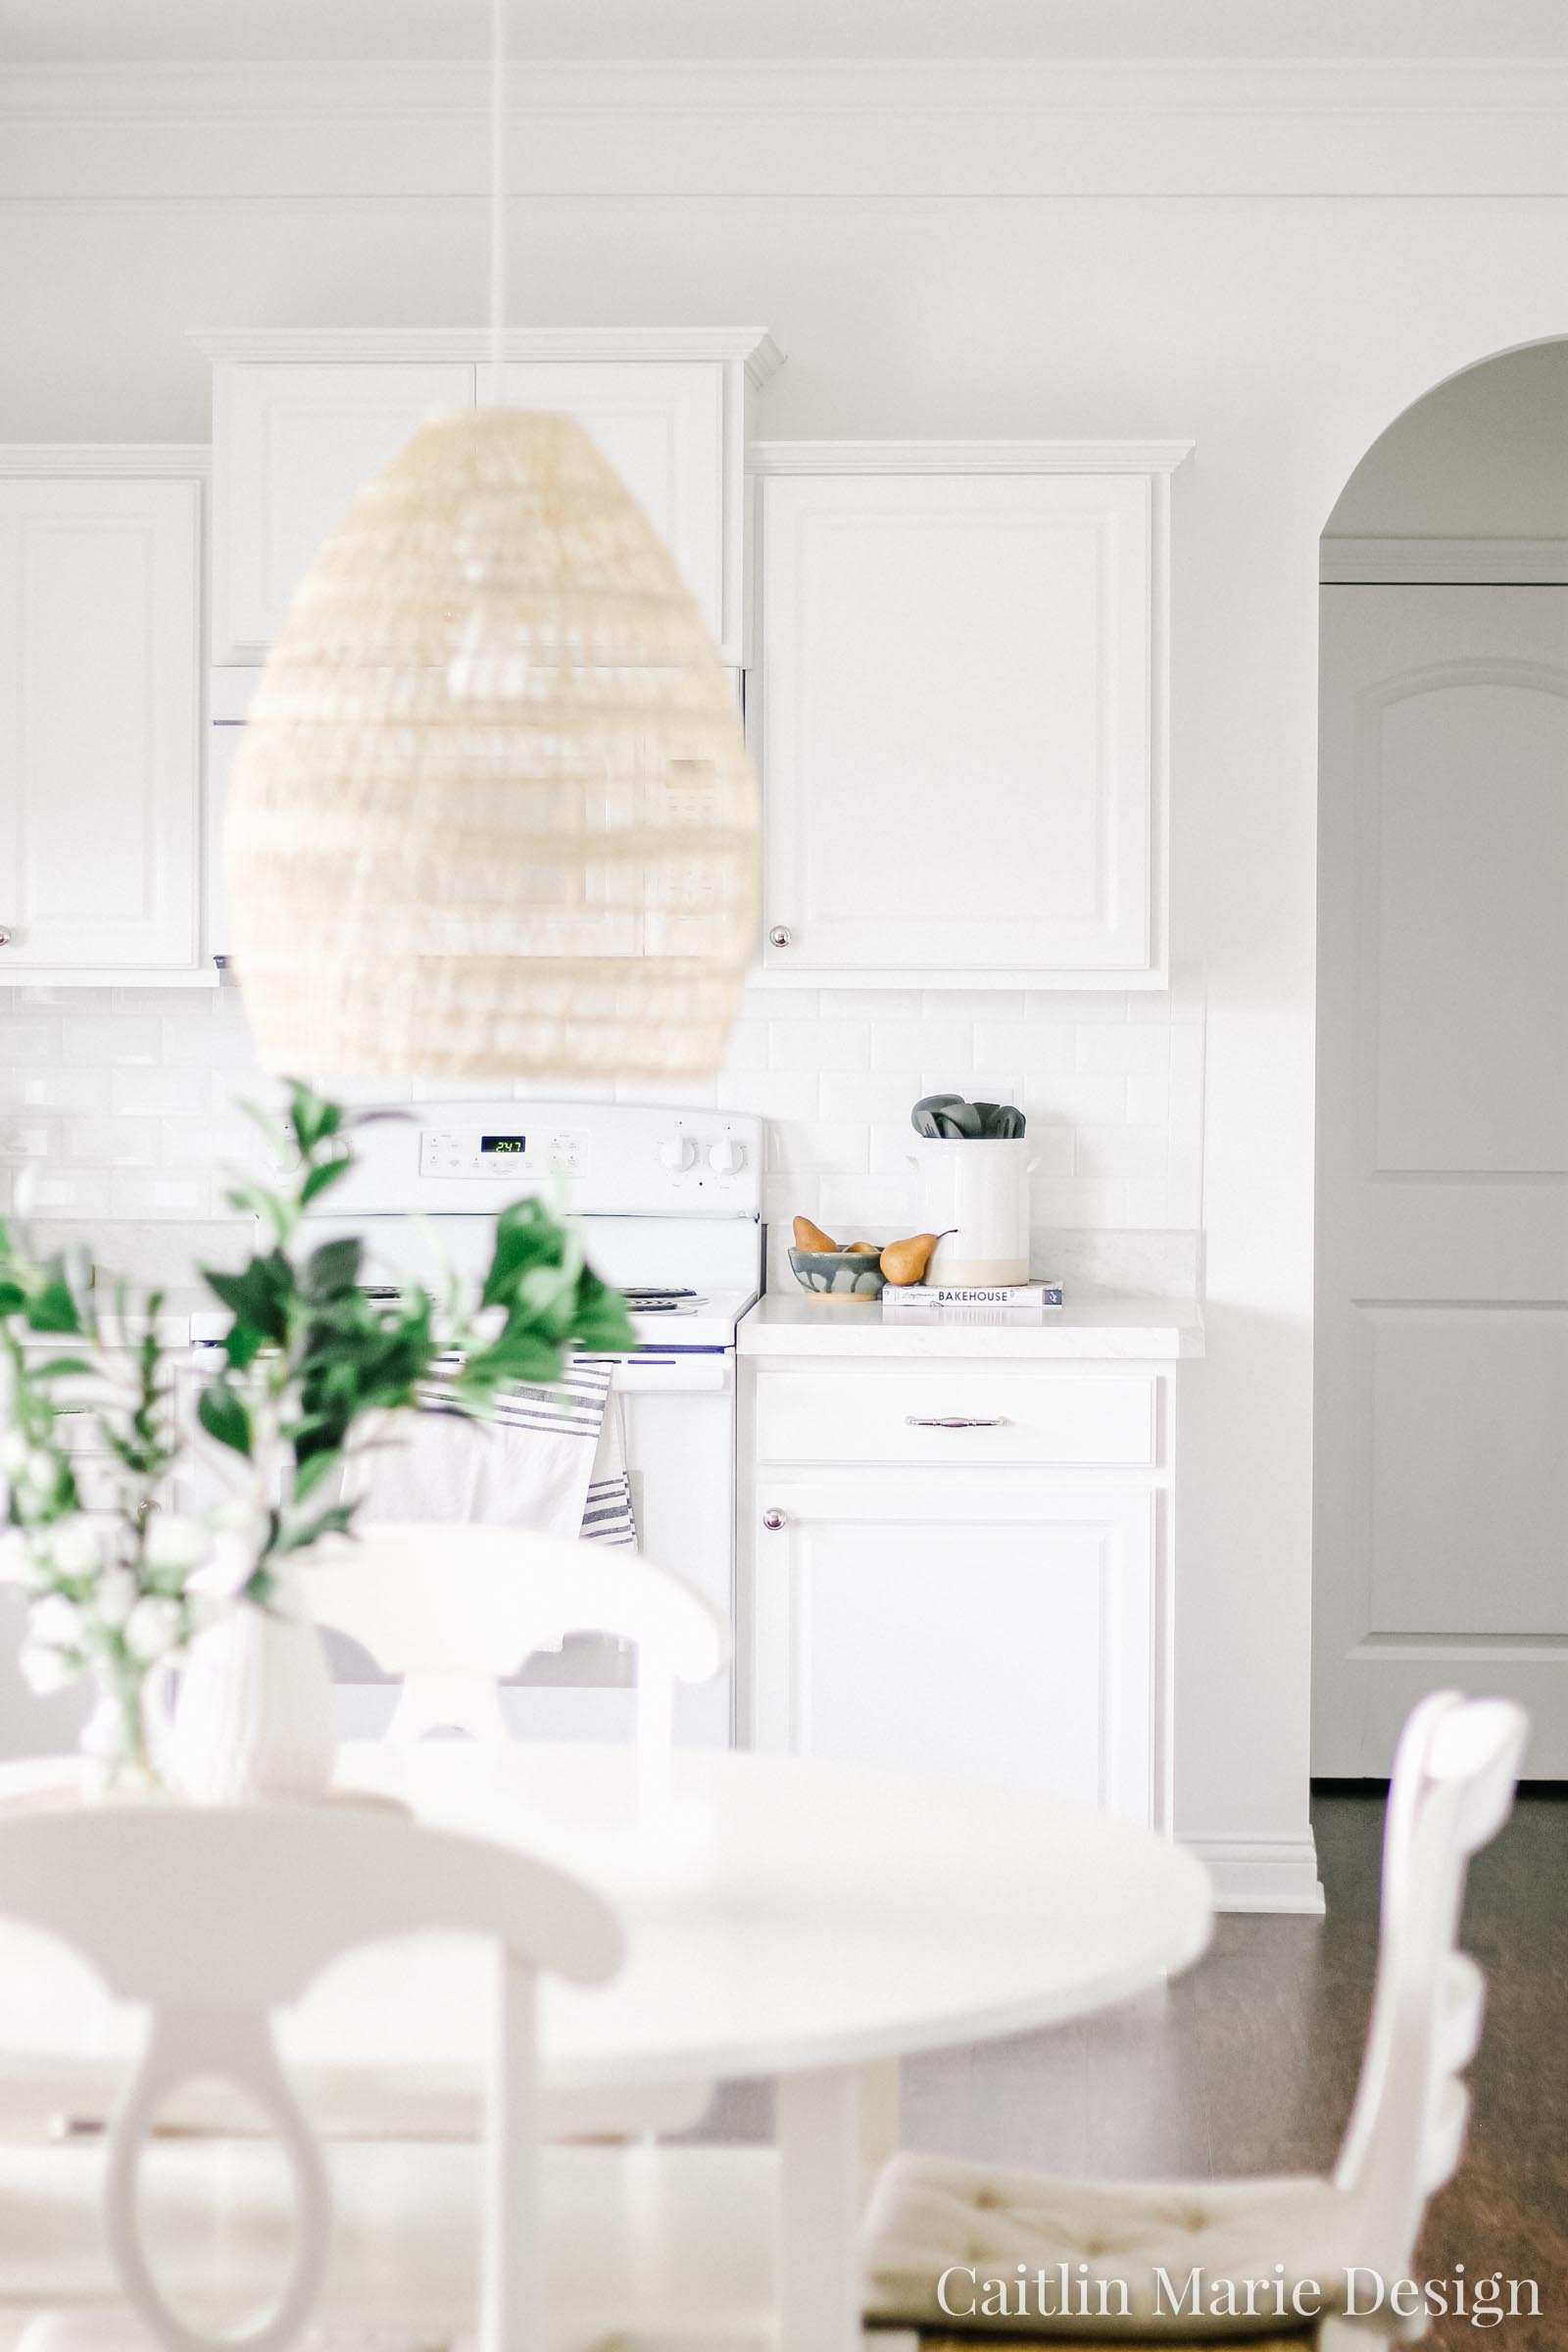 Summer Home Tour 2019 | white kitchen, woven rattan pendant light, minimalist decor, white subway tile, vintage